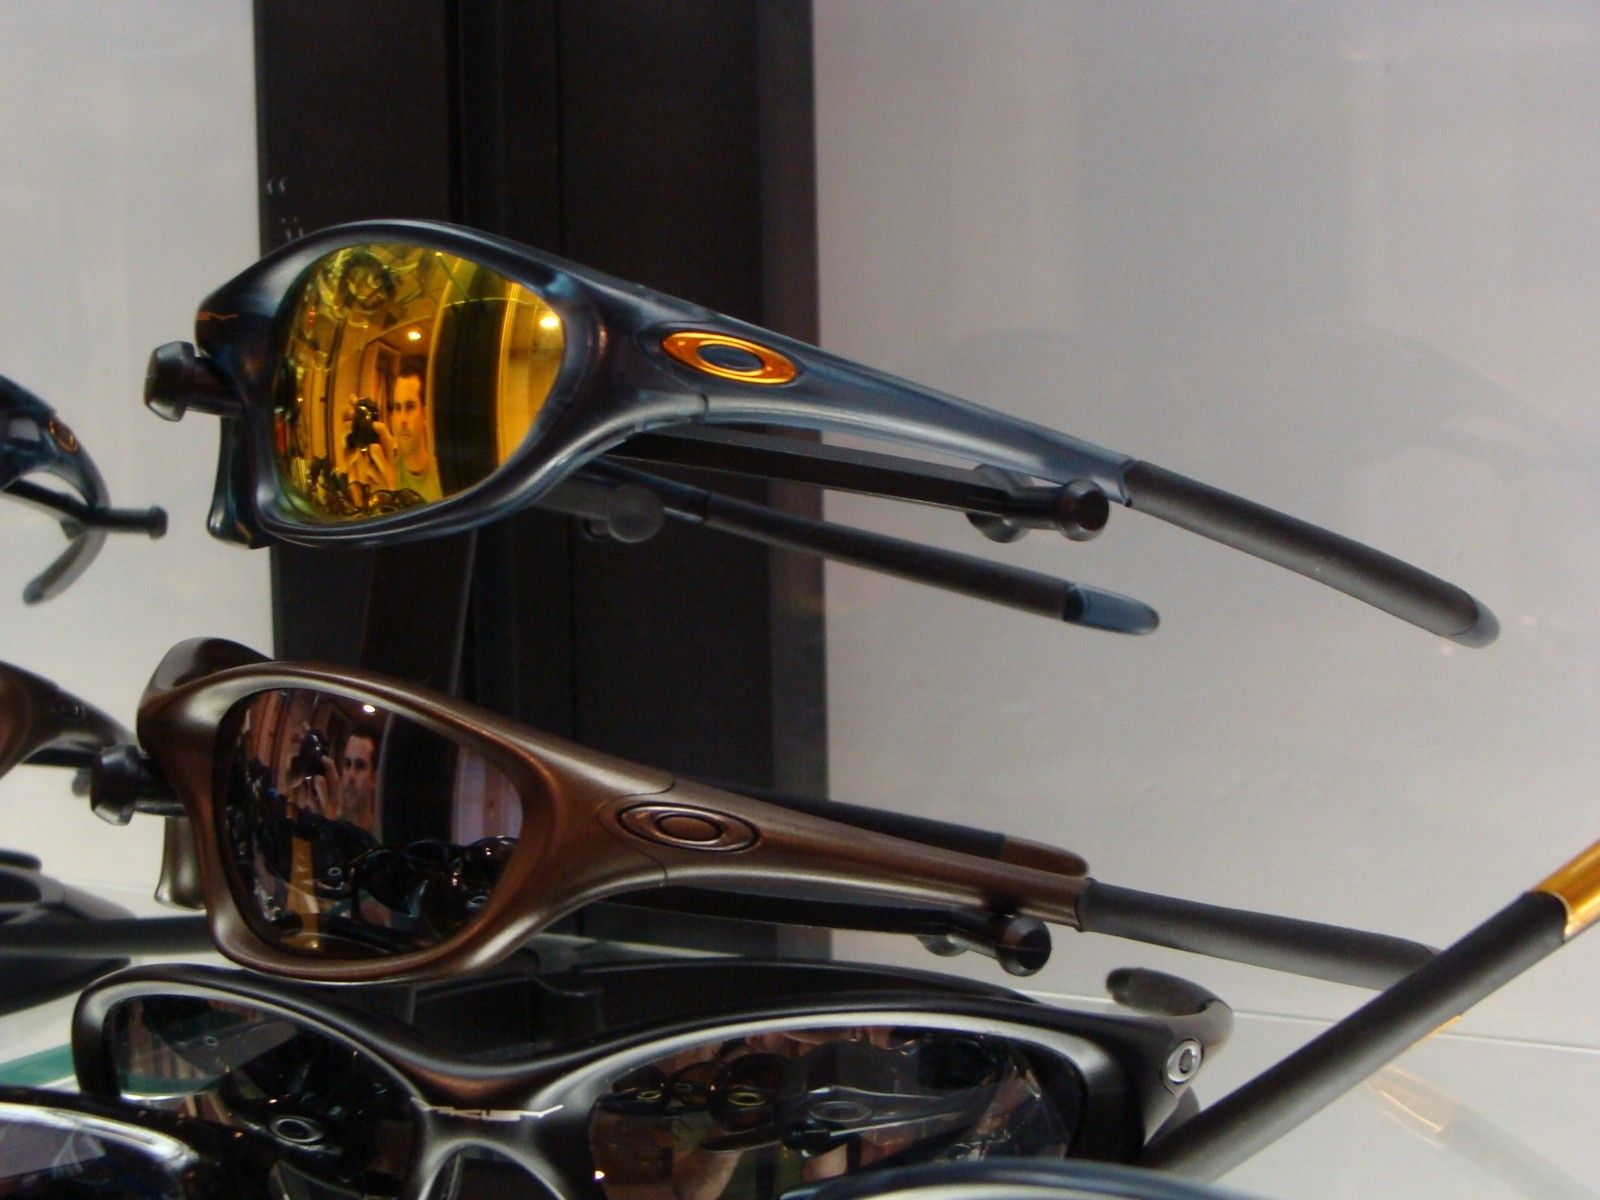 Preview Of My Oakley Collection - DSC07626.JPG